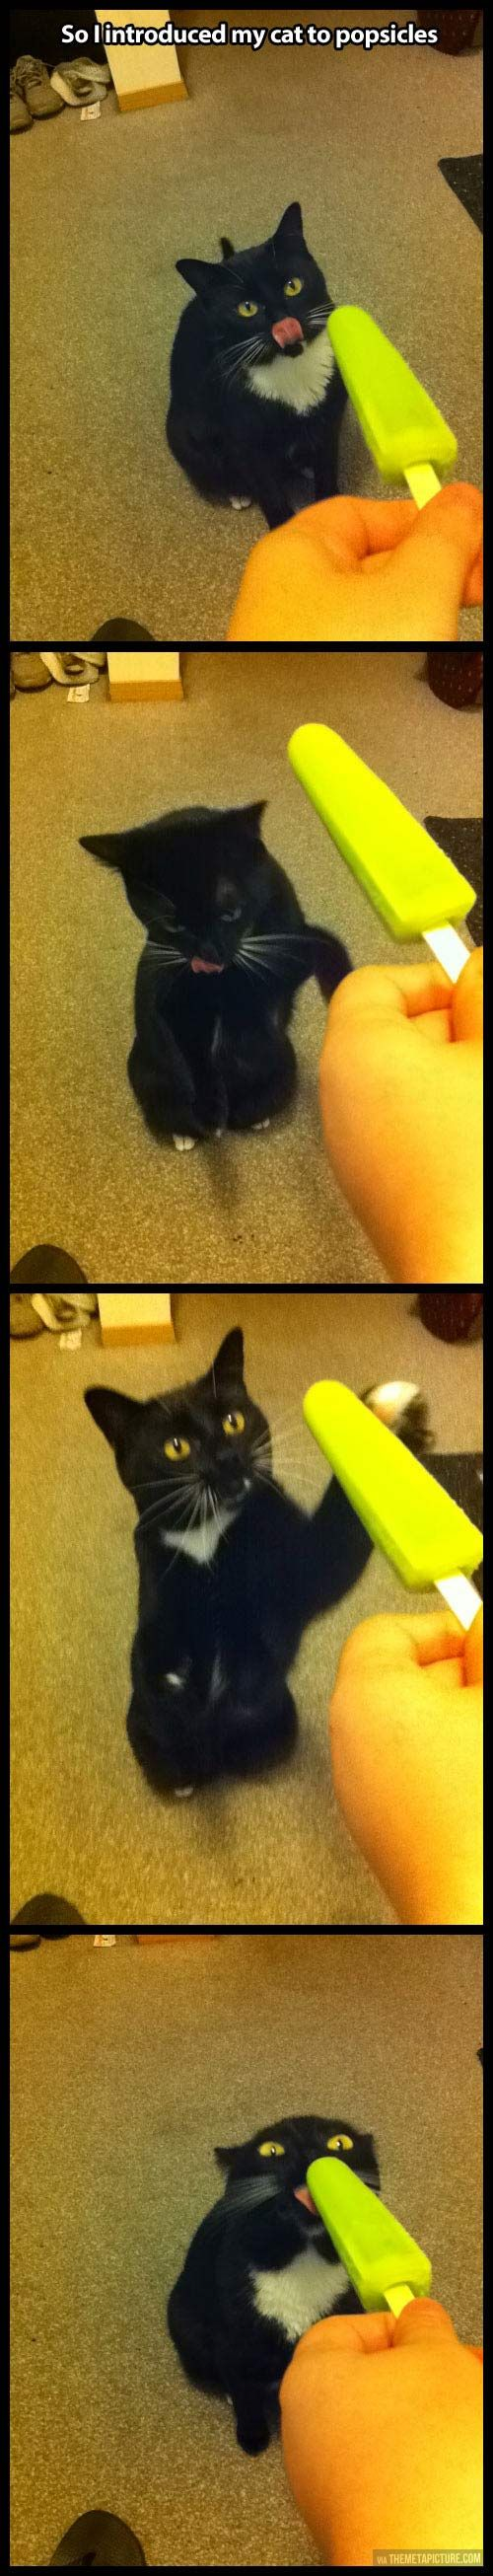 Introduced my cat to popsicles...